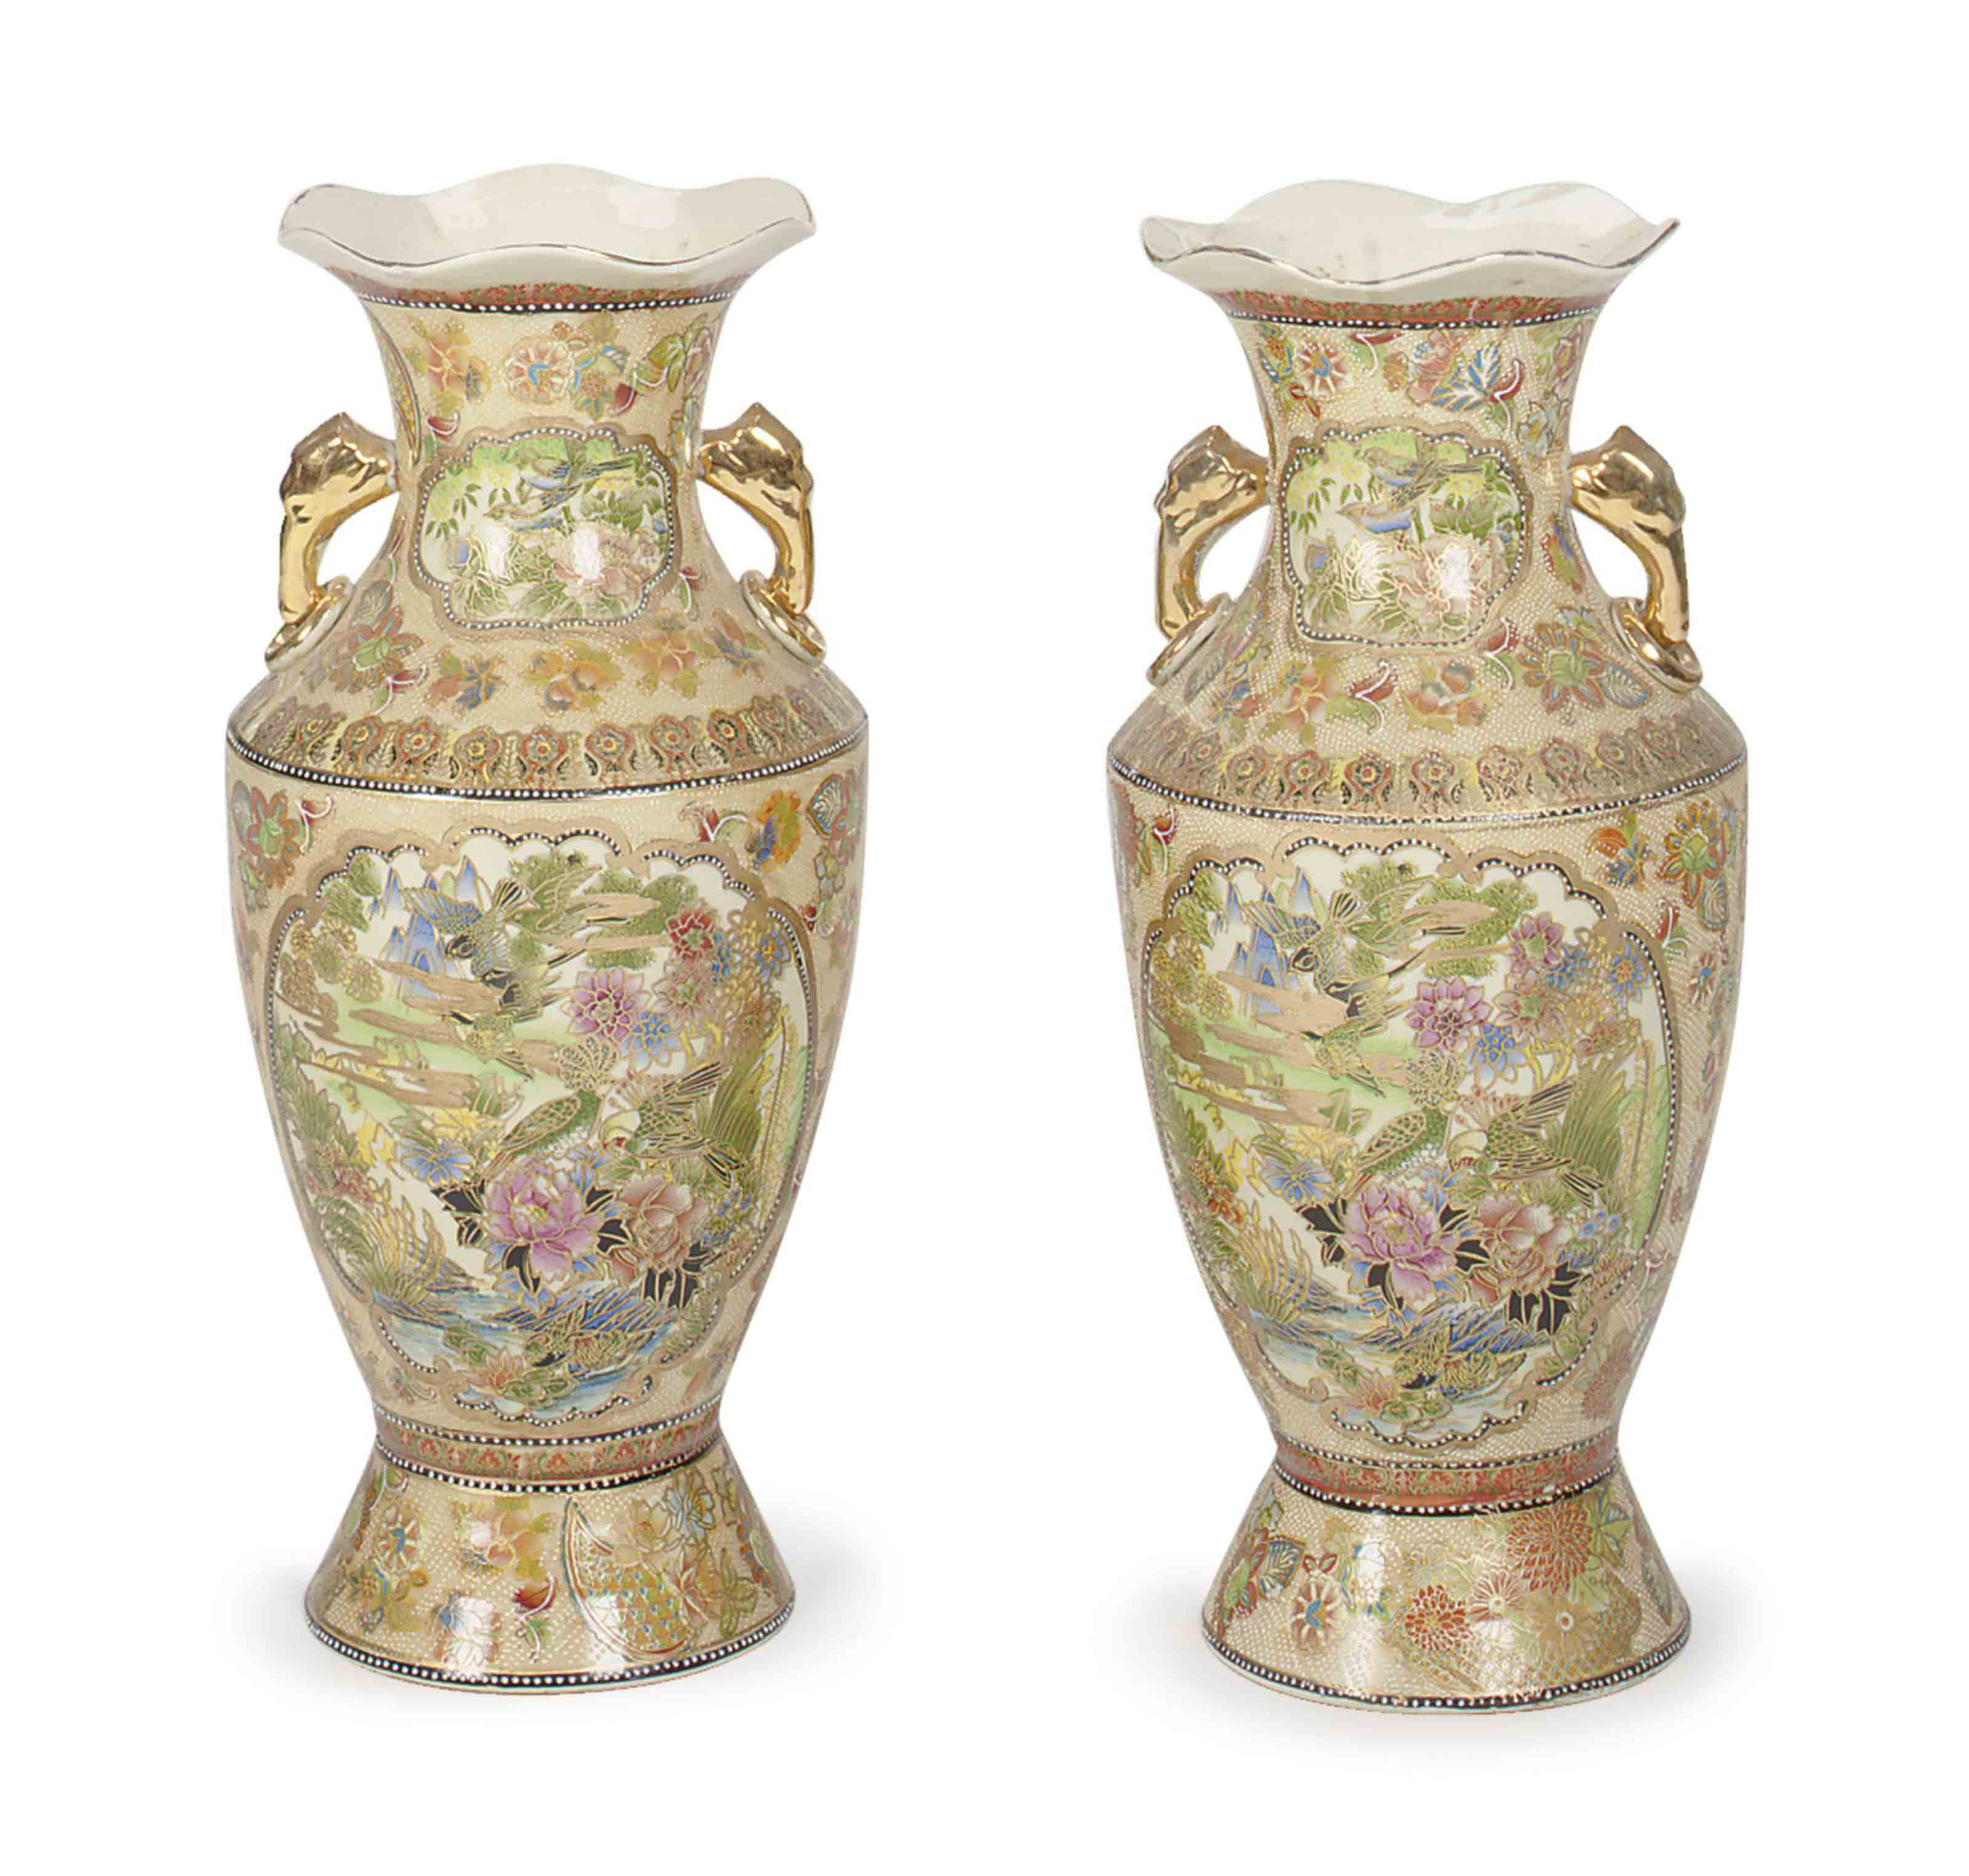 A PAIR OF SATSUMA-STYLE VASES,